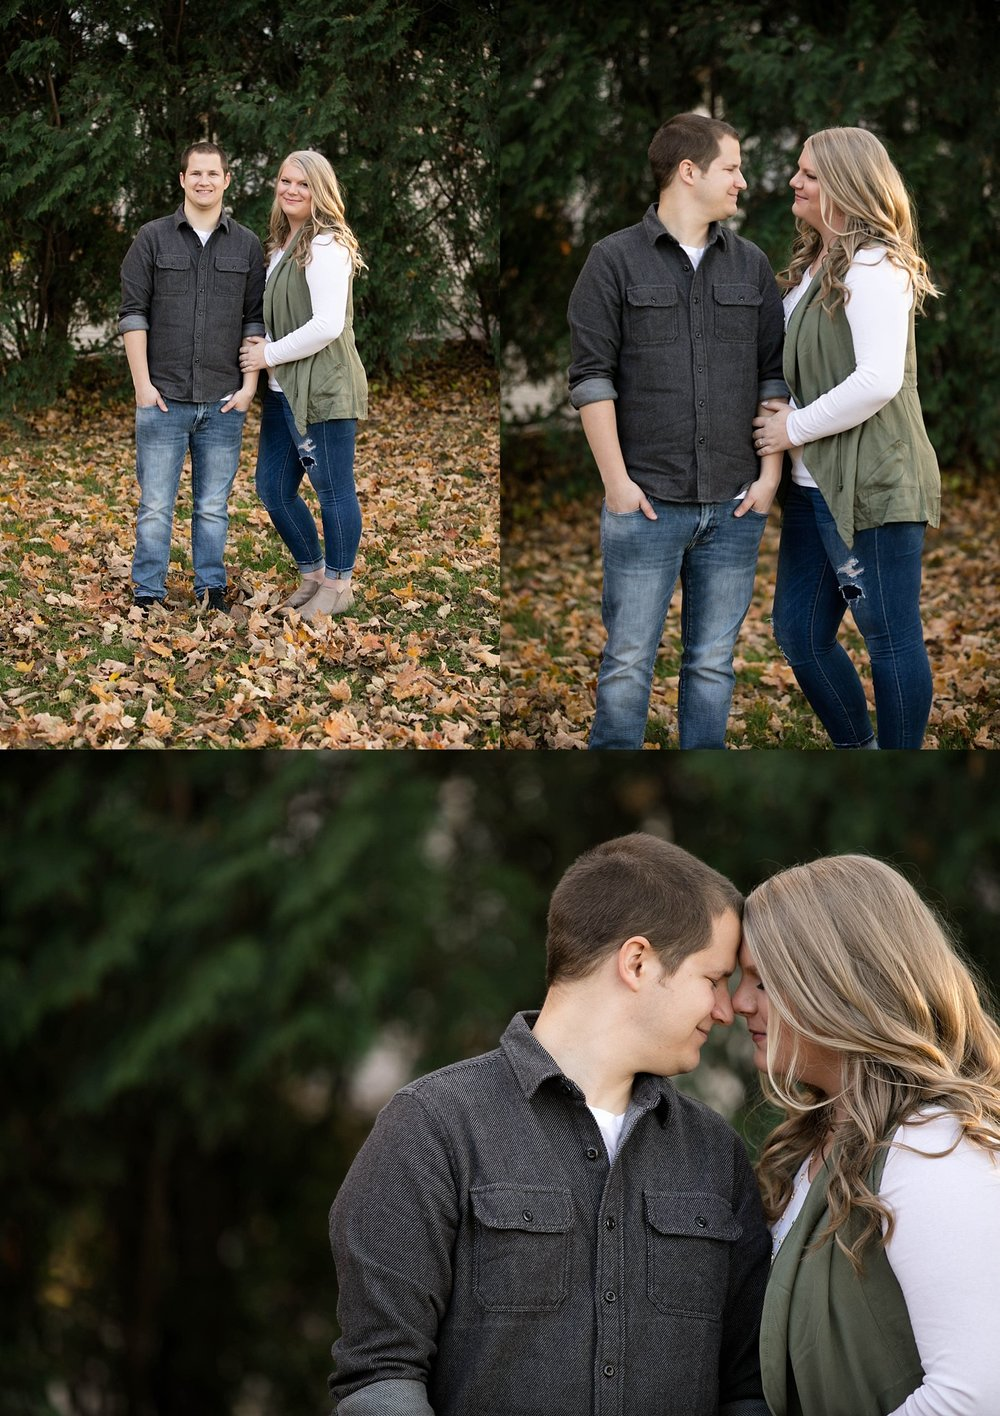 1Alice Hq Photography | Jordain + Kody | Southern MN Engagement.jpg